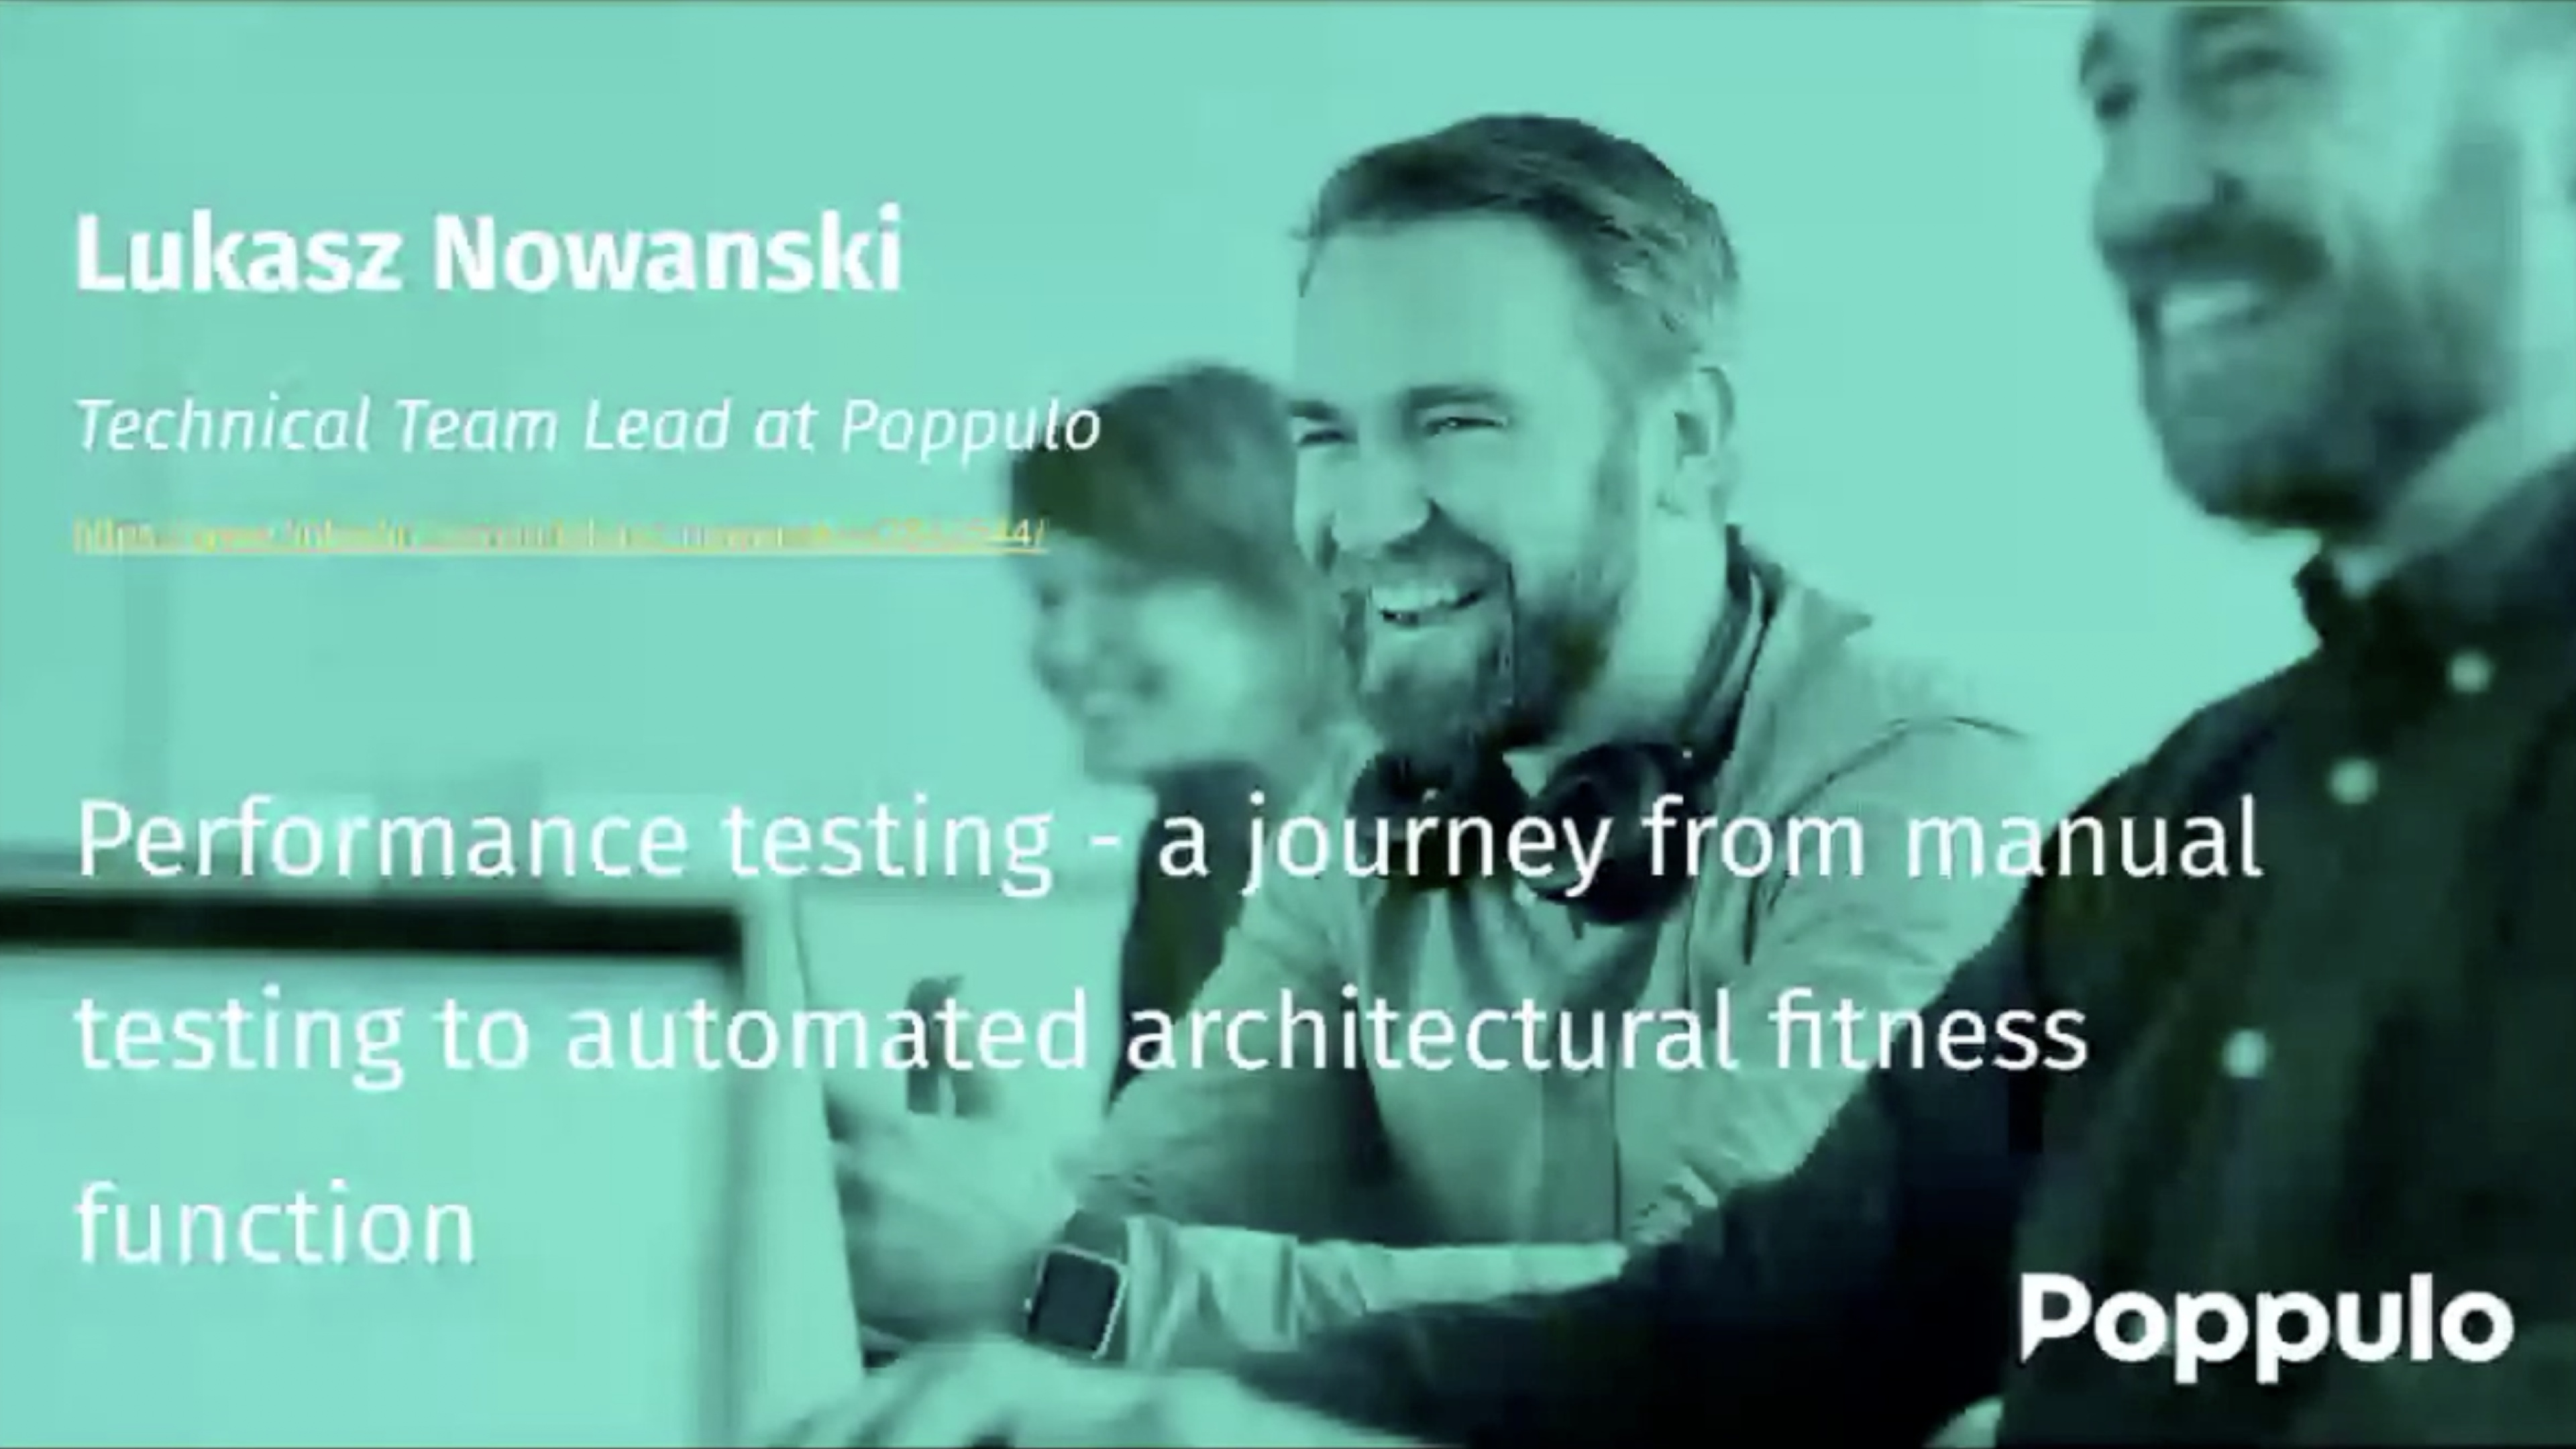 The Motrix : Lukasz Nowanski - Real world Example of Performance Testing